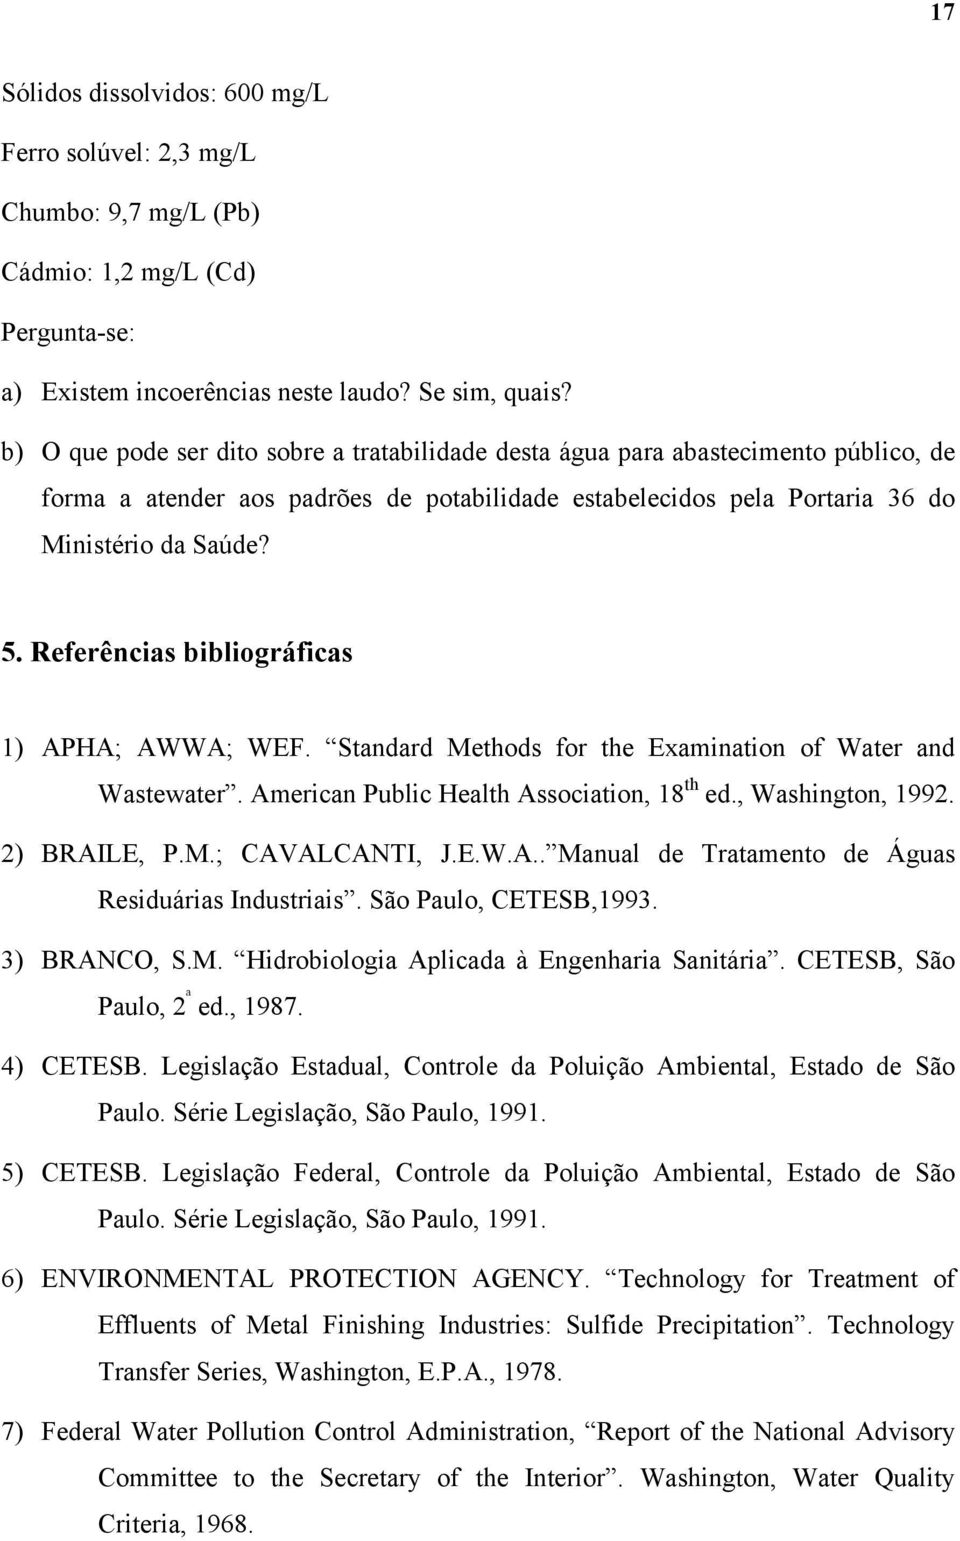 Referências bibliográficas 1) APHA; AWWA; WEF. Standard Methods for the Examination of Water and Wastewater. American Public Health Association, 18 th ed., Washington, 1992. 2) BRAILE, P.M.; CAVALCANTI, J.